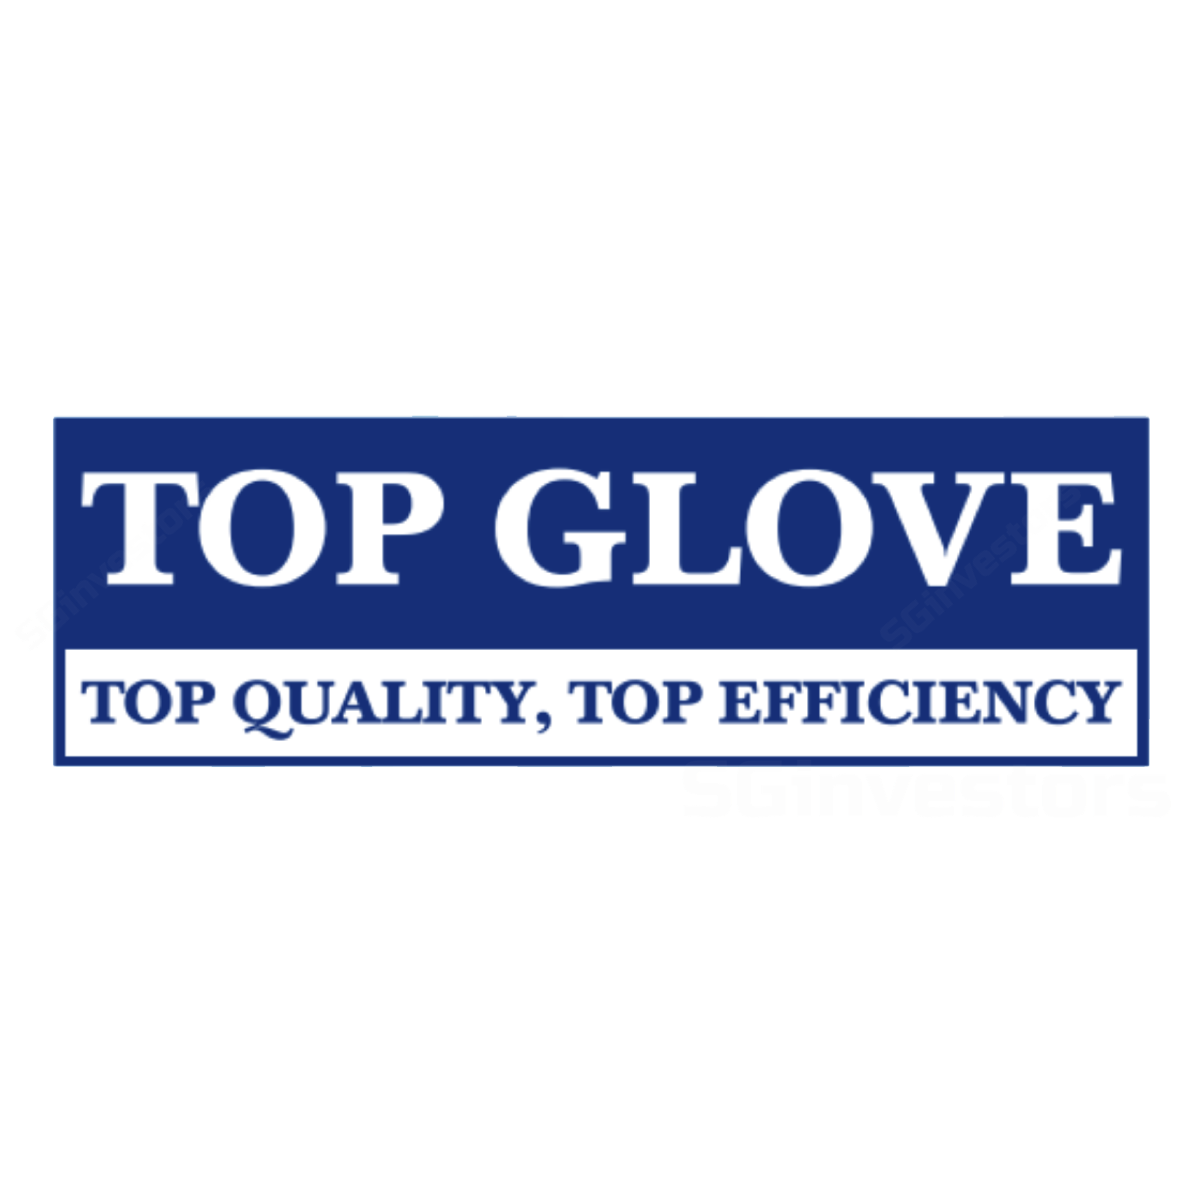 Top Glove Corporation - CIMB Research 2017-11-27: The Largest Global Glove Maker Just Got Bigger